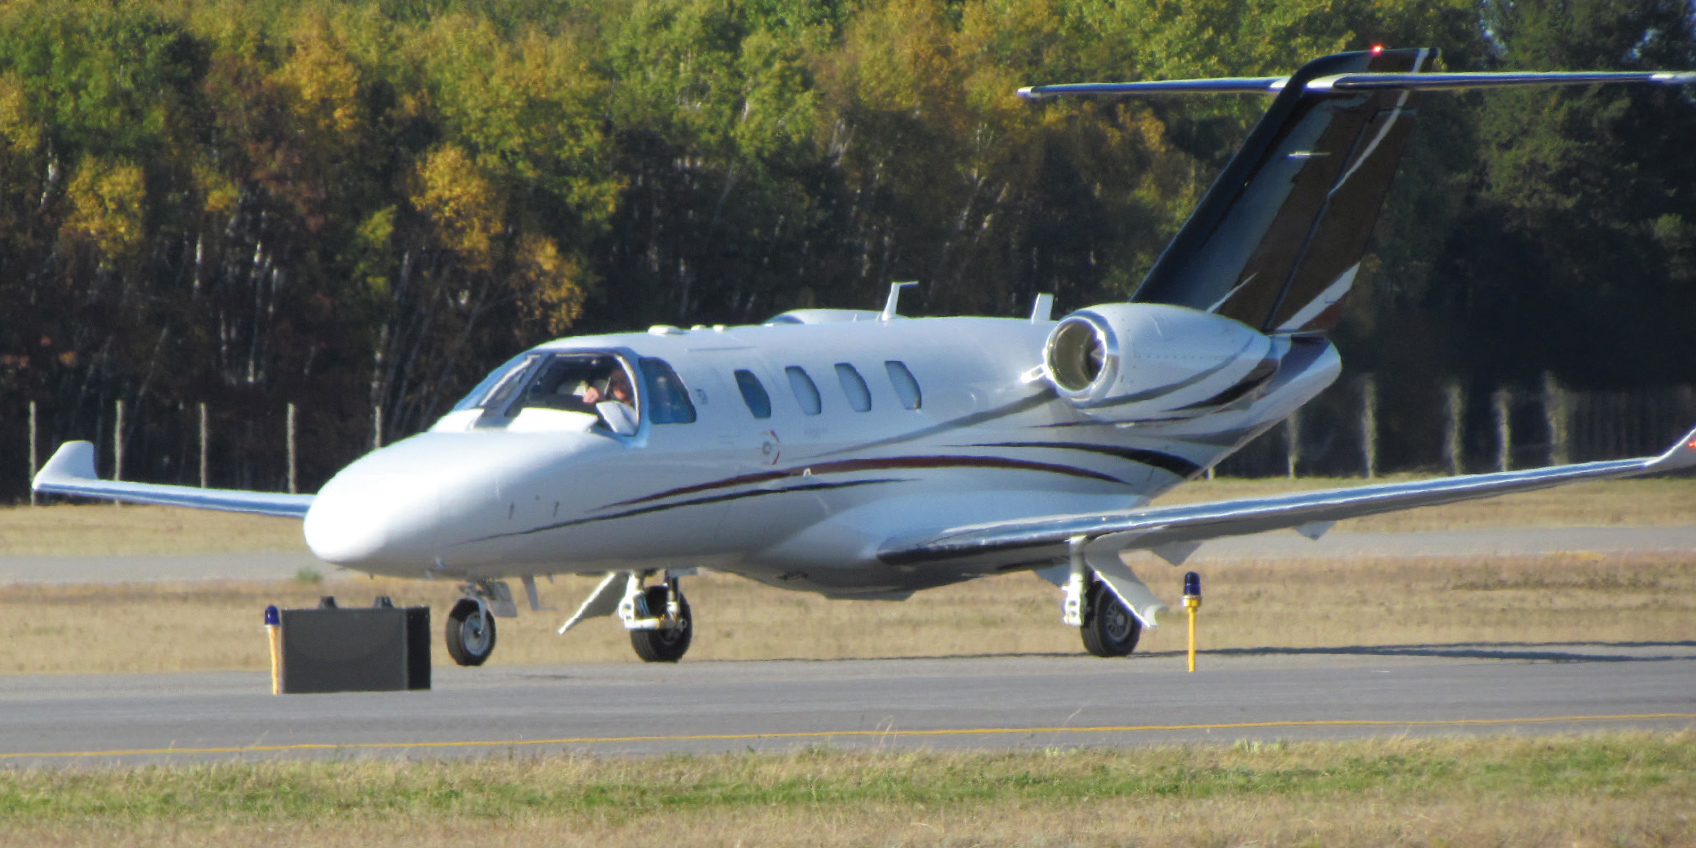 Citation M2 taxiing